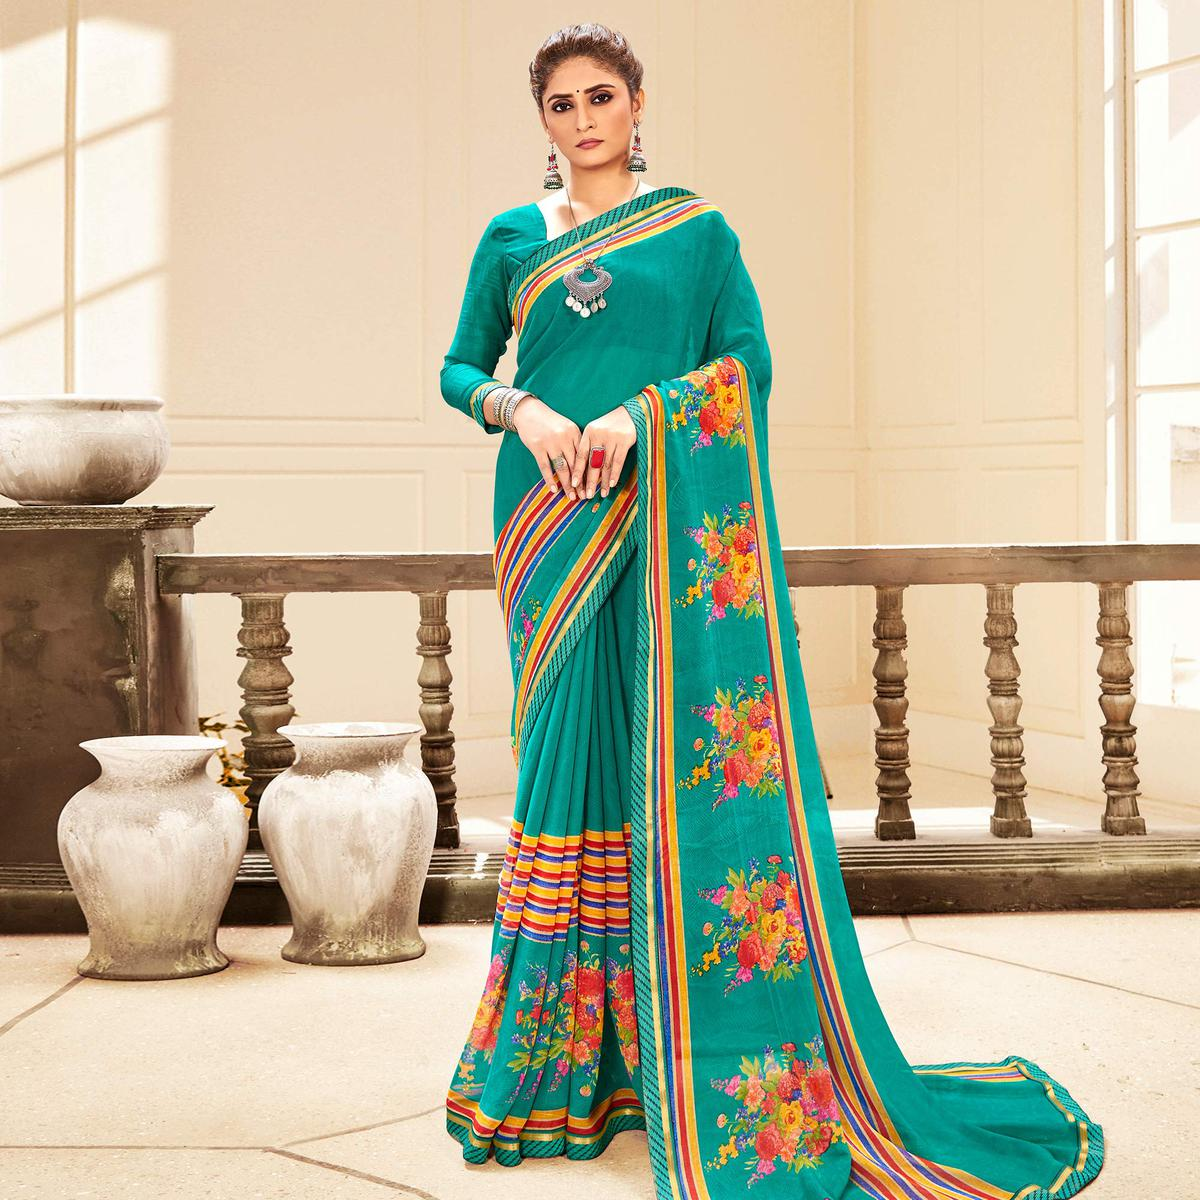 Green Casual Wear Designer Floral Printed Soft Georgette Saree With Lace Border